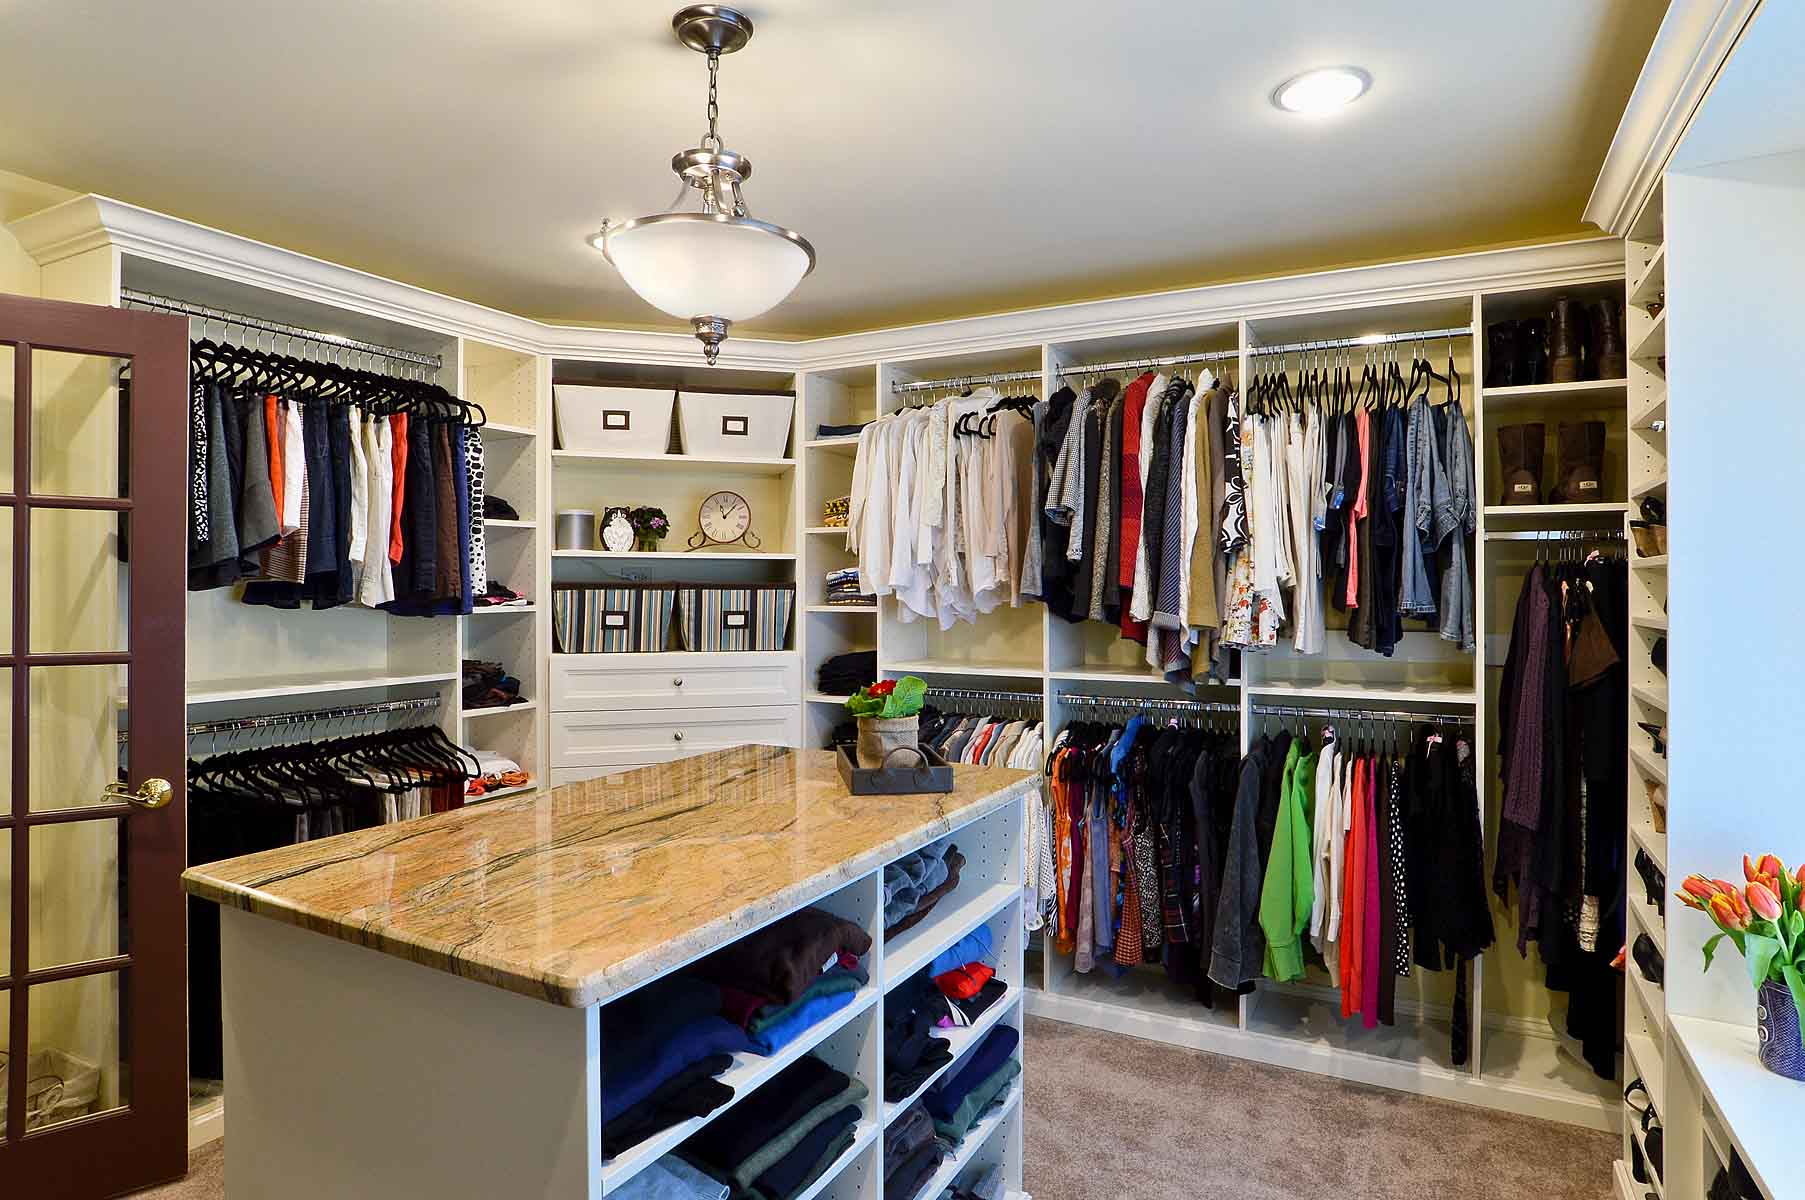 Organized walk-in closet with seasonal clothing